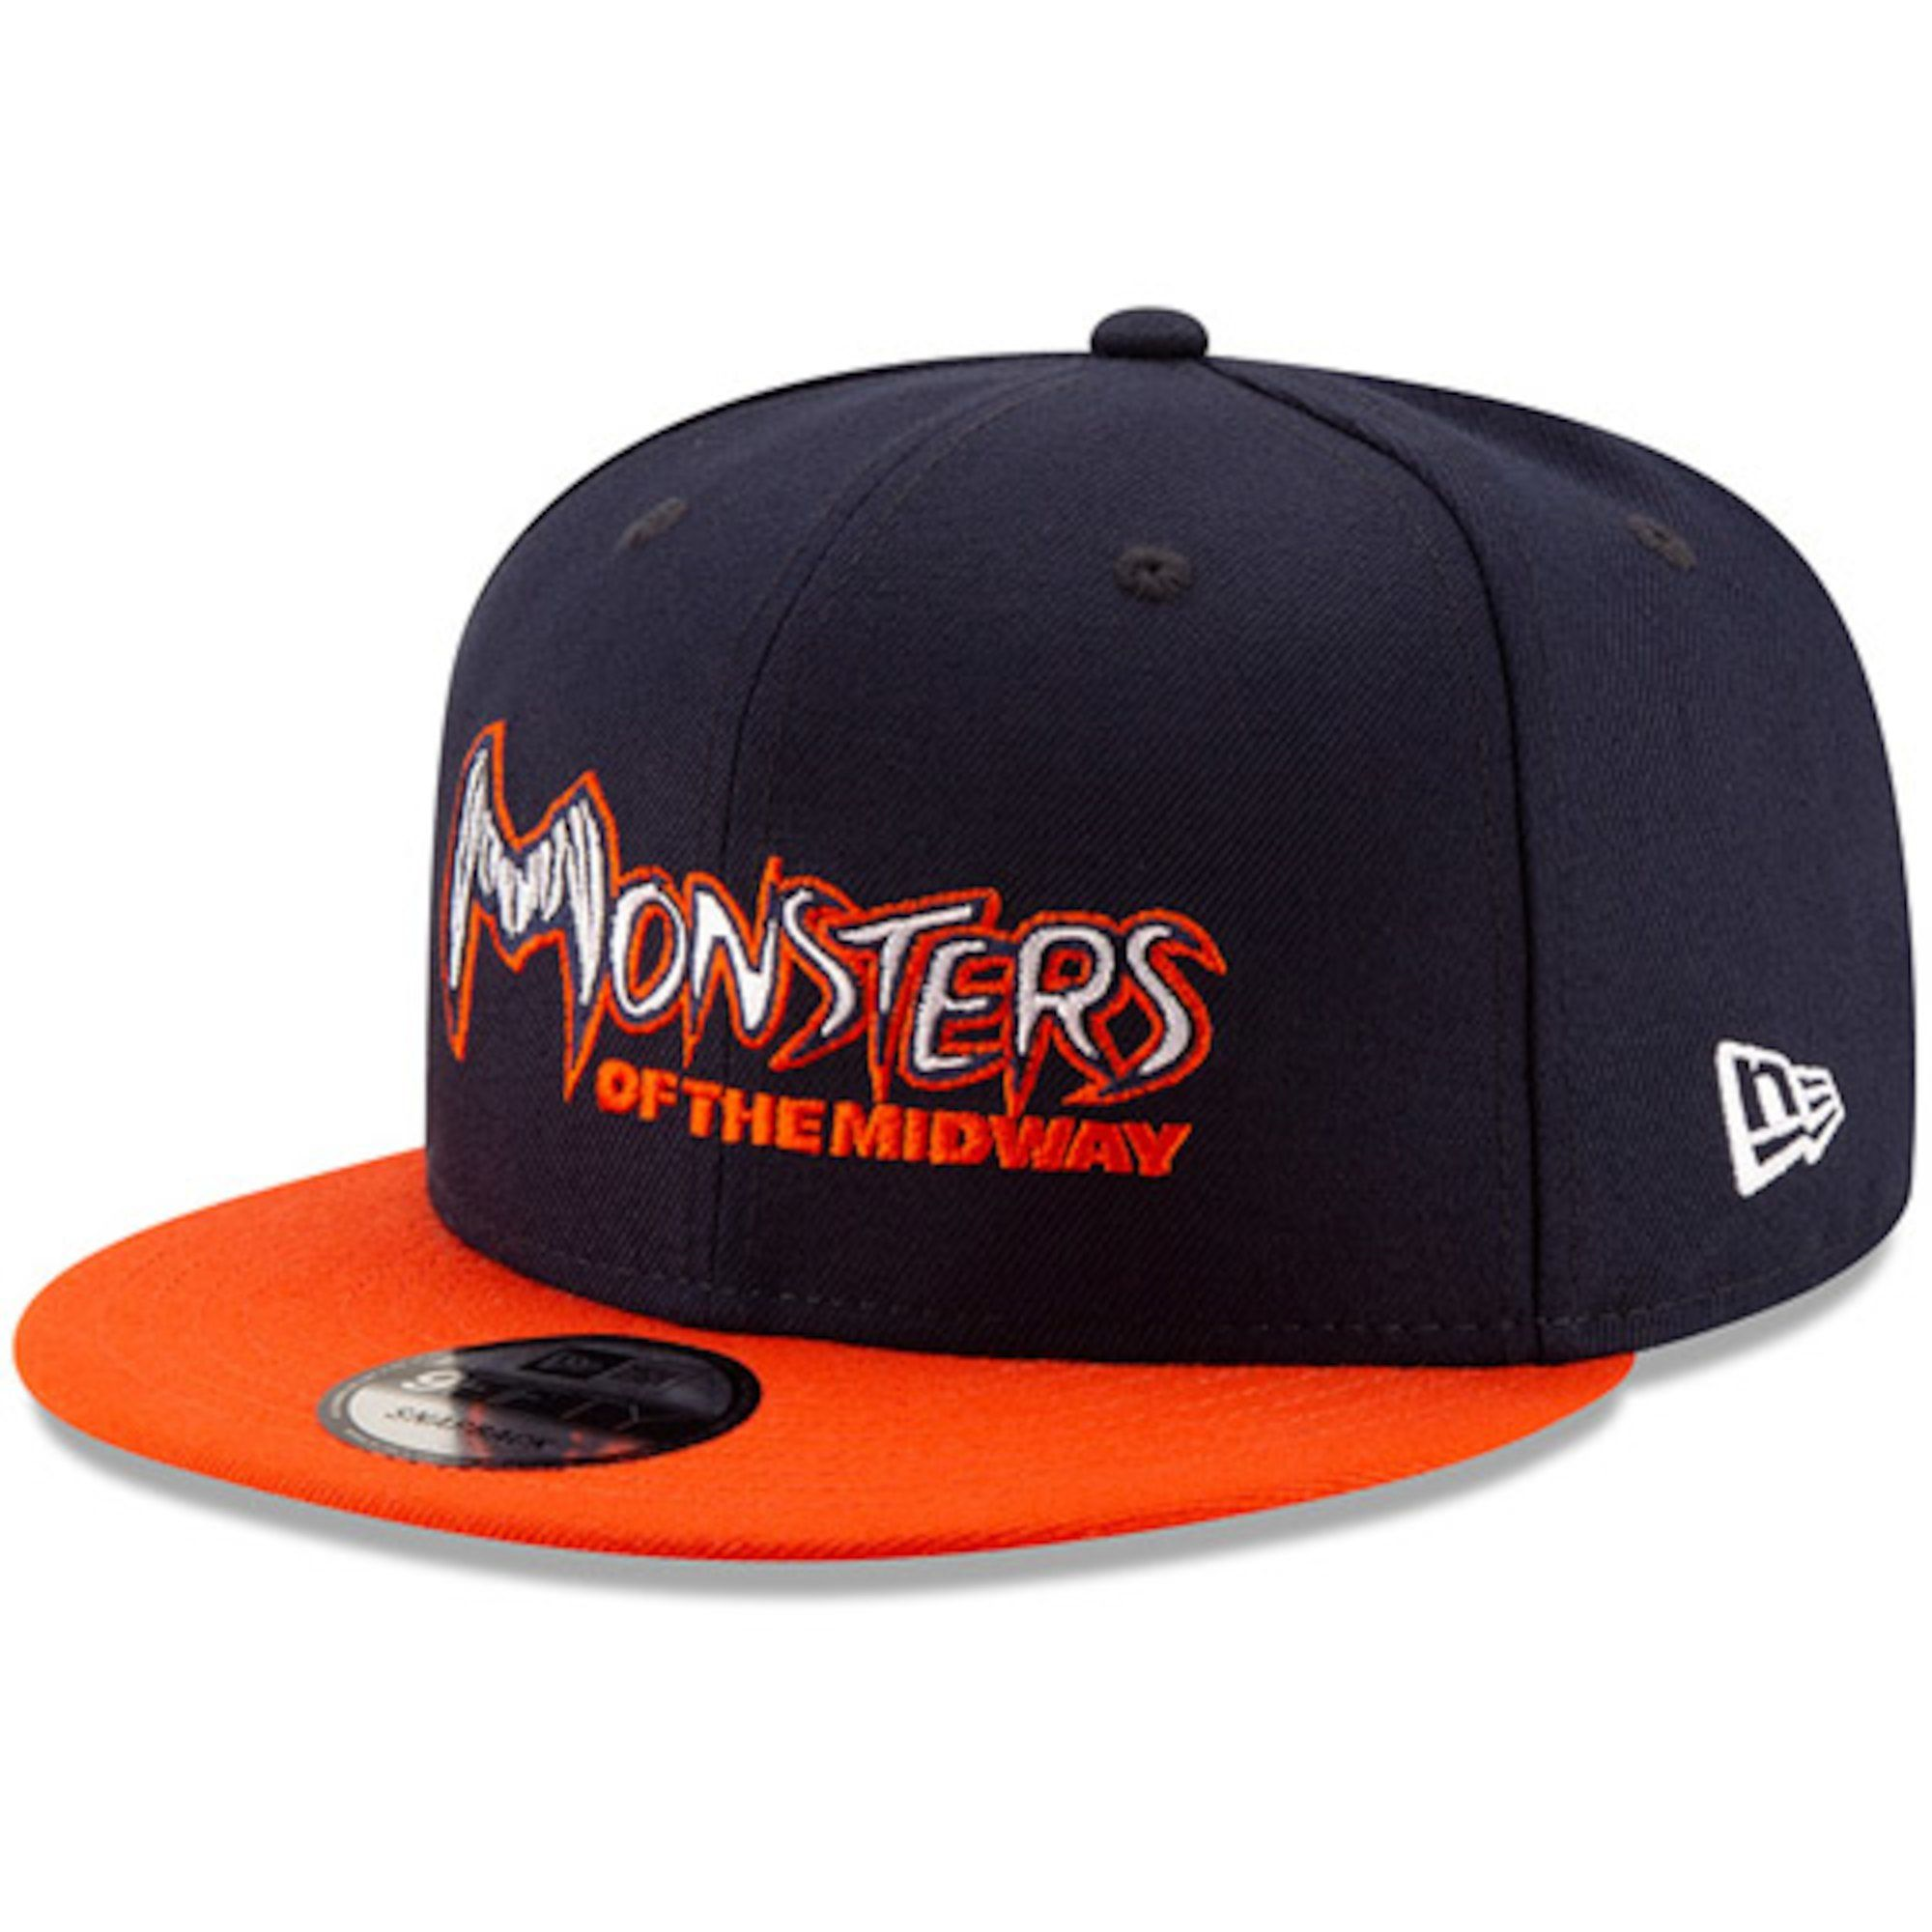 new style f2657 f0c30 Men s Chicago Bears New Era Navy Orange Monsters of the Midway Two-Tone  9FIFTY Adjustable Snapback Hat, Your Price   31.99